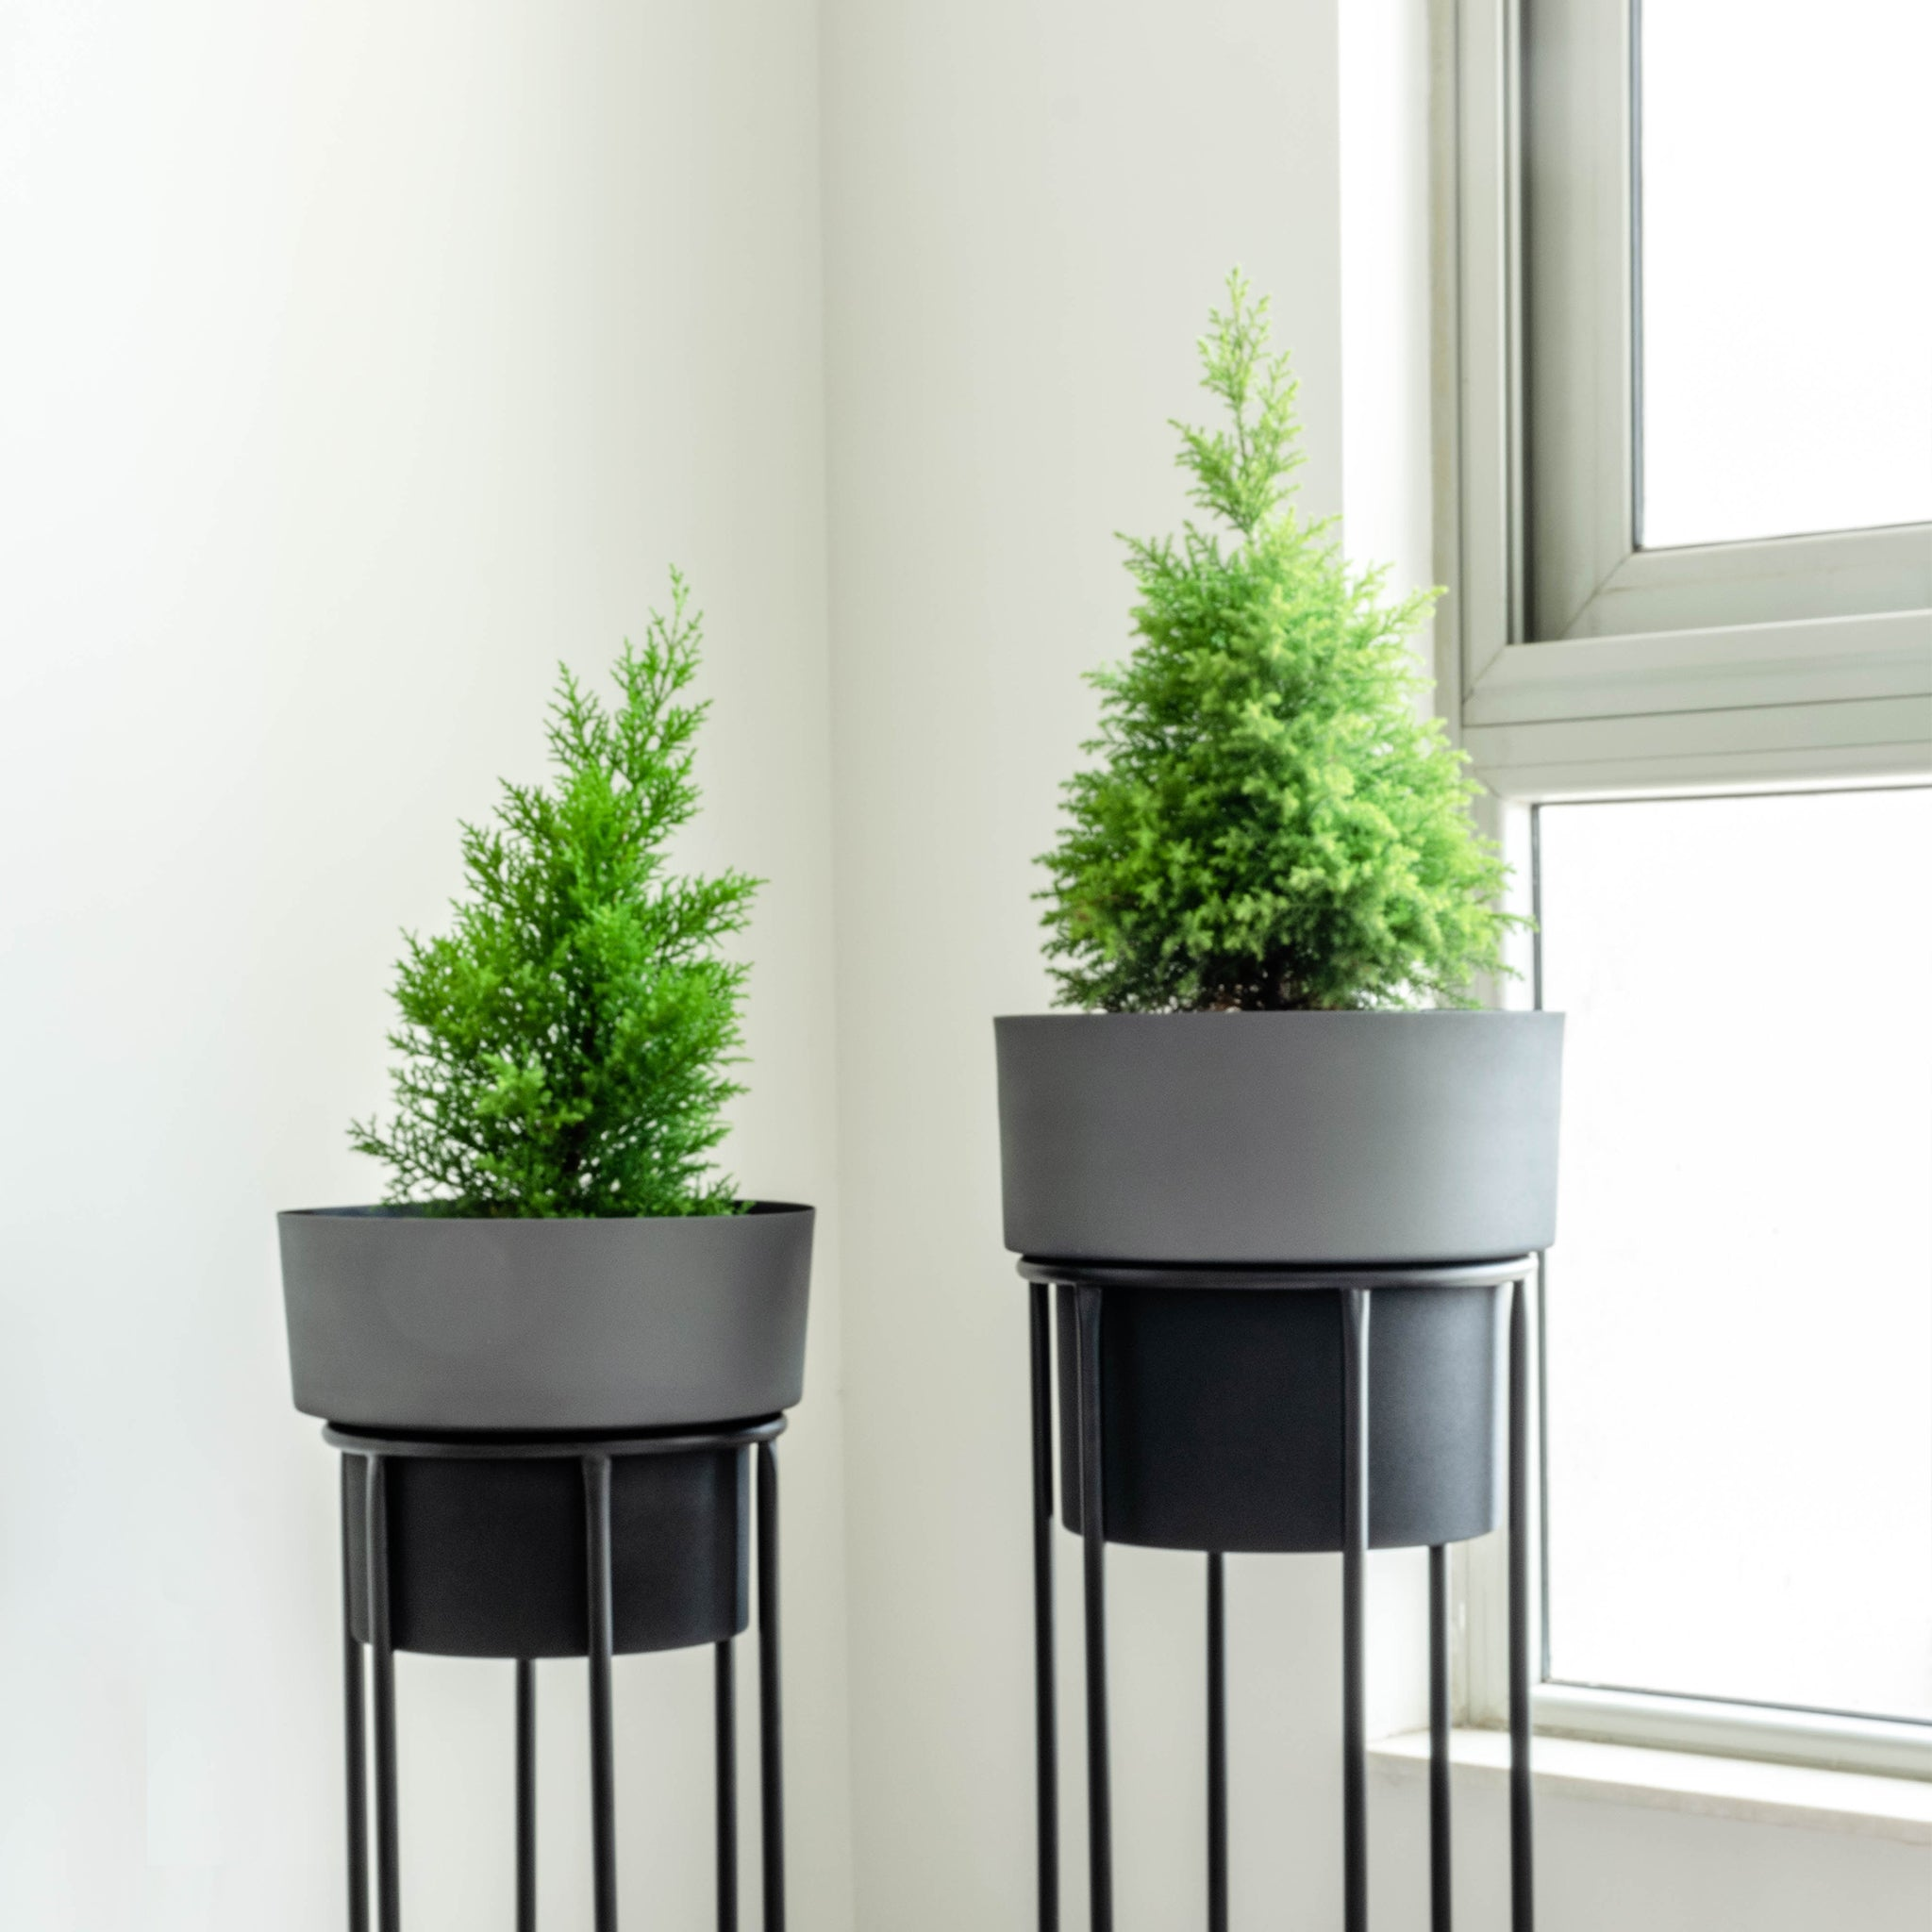 Two tall dual tone planters, slate and black with black stands in font of a window